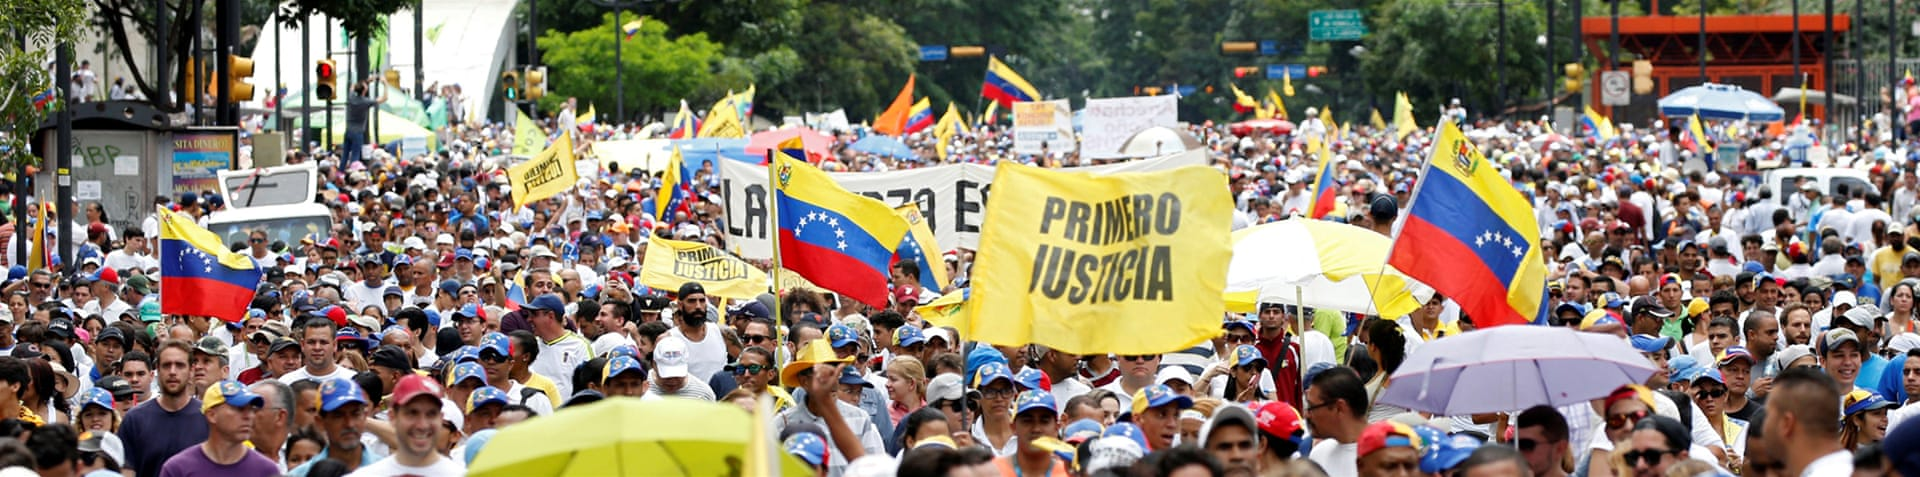 Hundreds of thousands march through the streets of Caracas to demands a recall vote against President Maduro [Reuters]